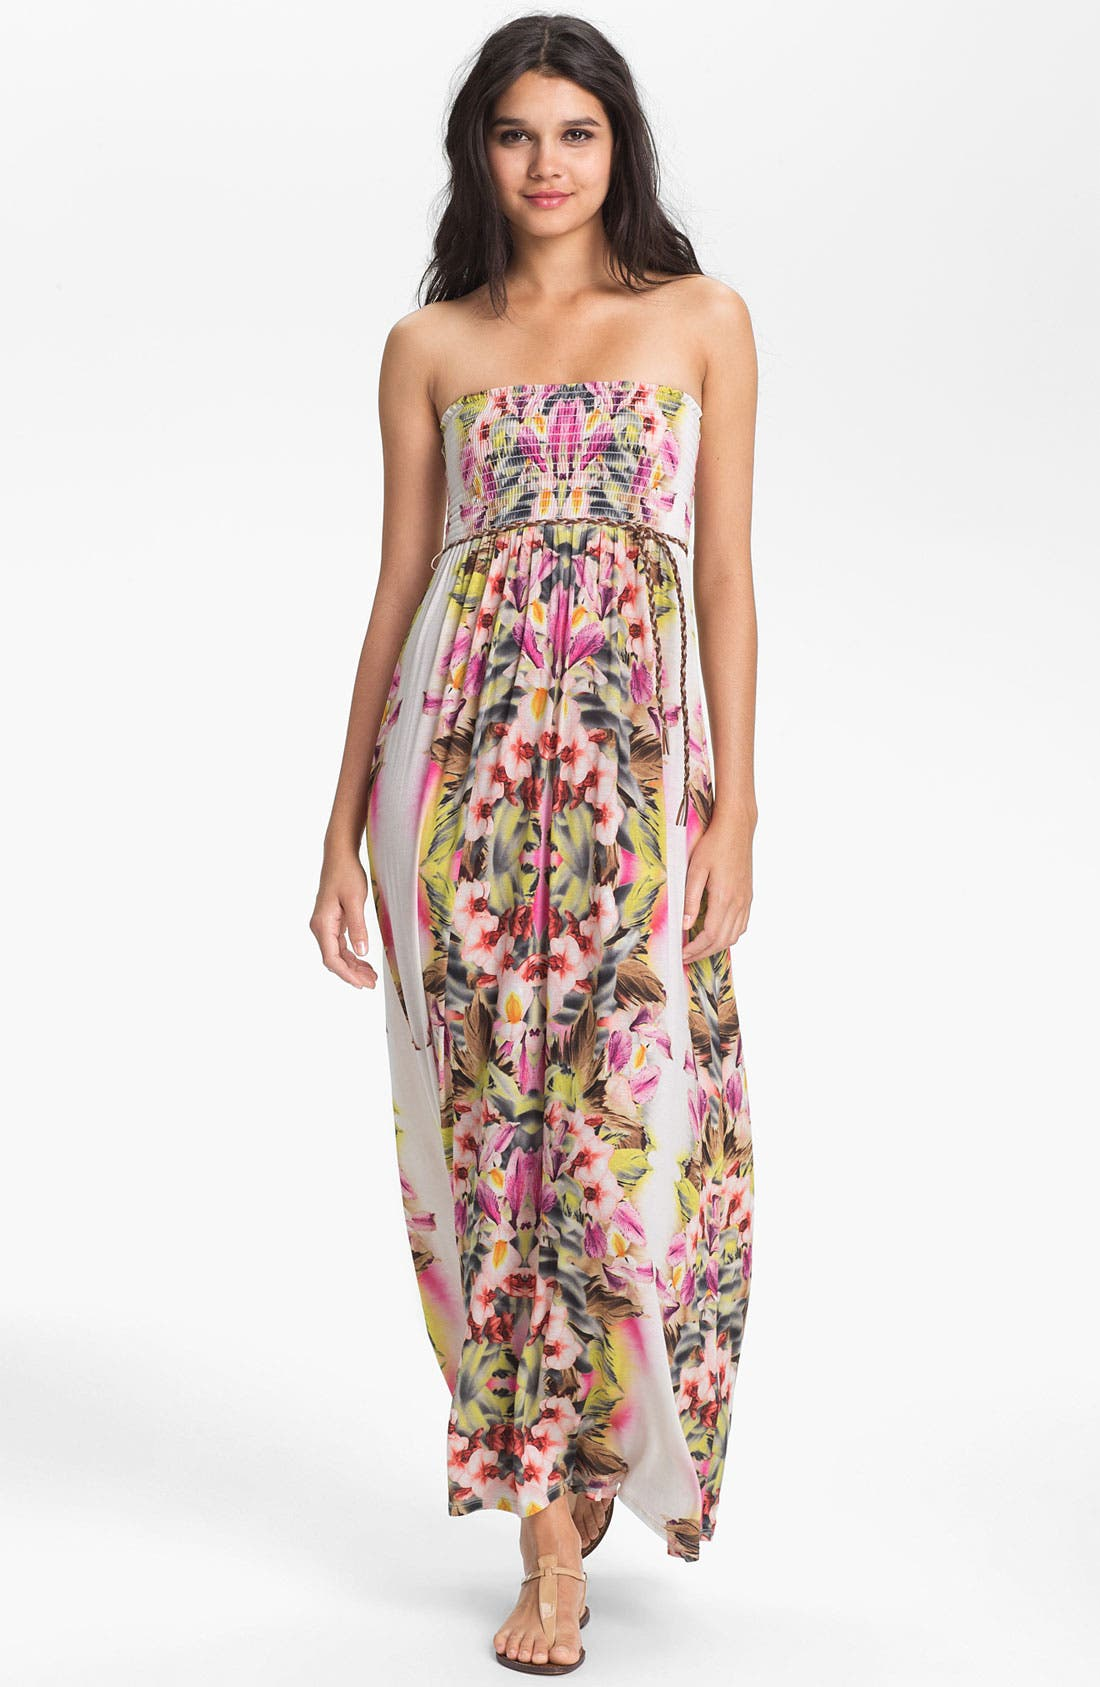 Main Image - Lily Aldridge for Velvet by Graham & Spencer Floral Print Strapless Maxi Dress